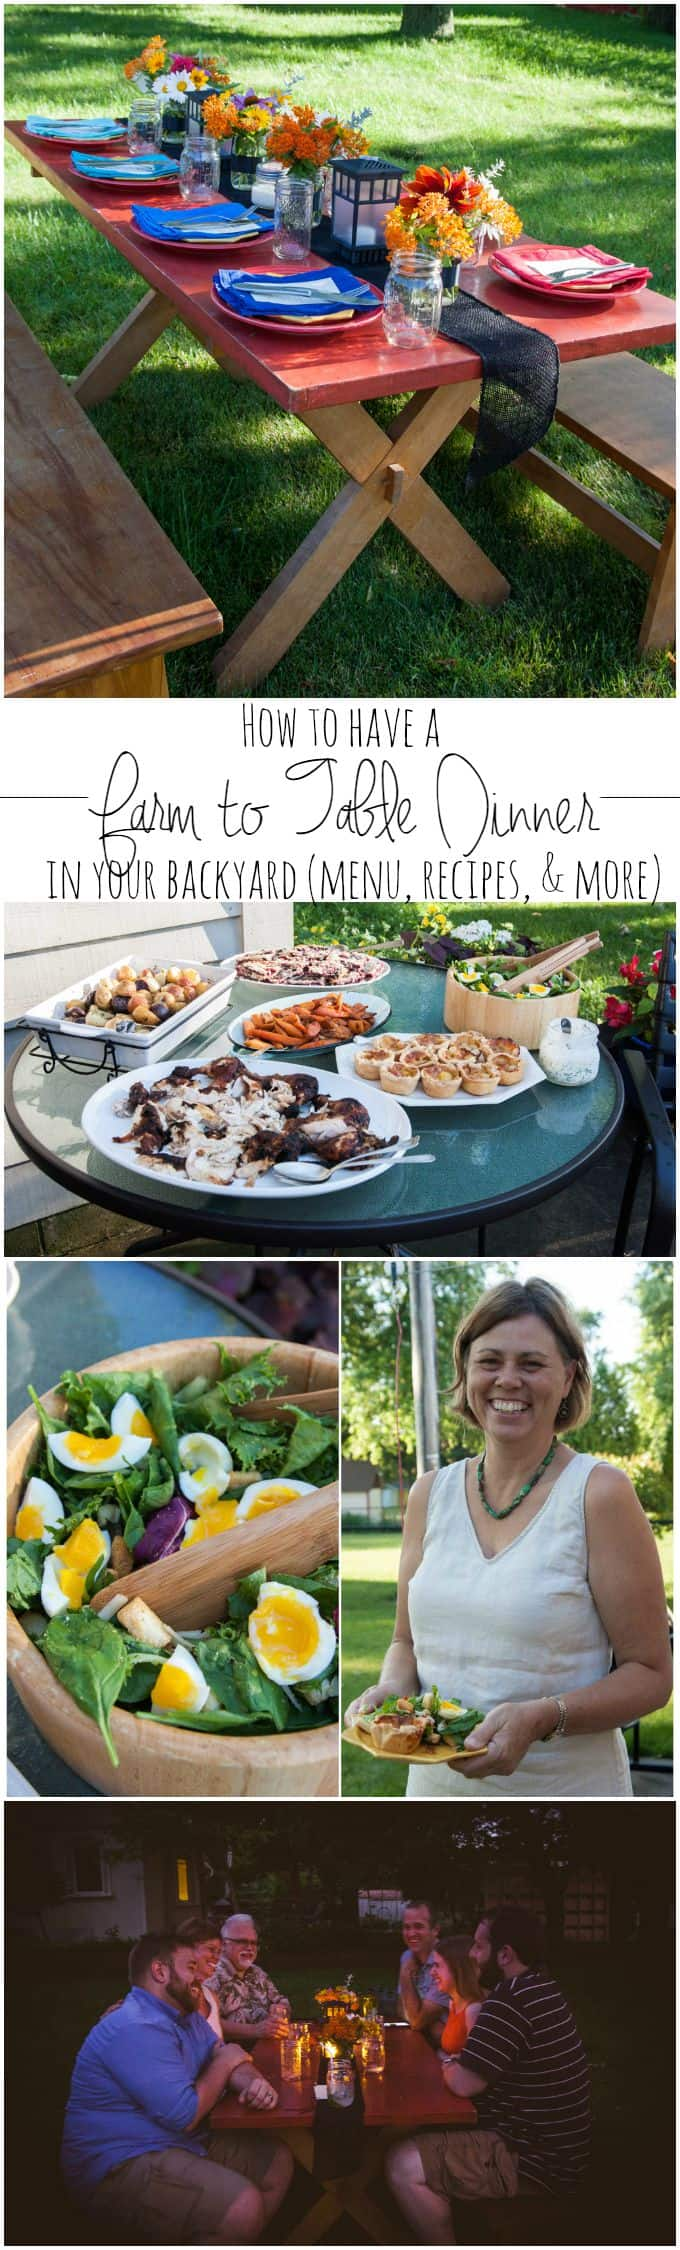 How to have a farm to table dinner in your backyard - menu recipes and more from @sweetphi